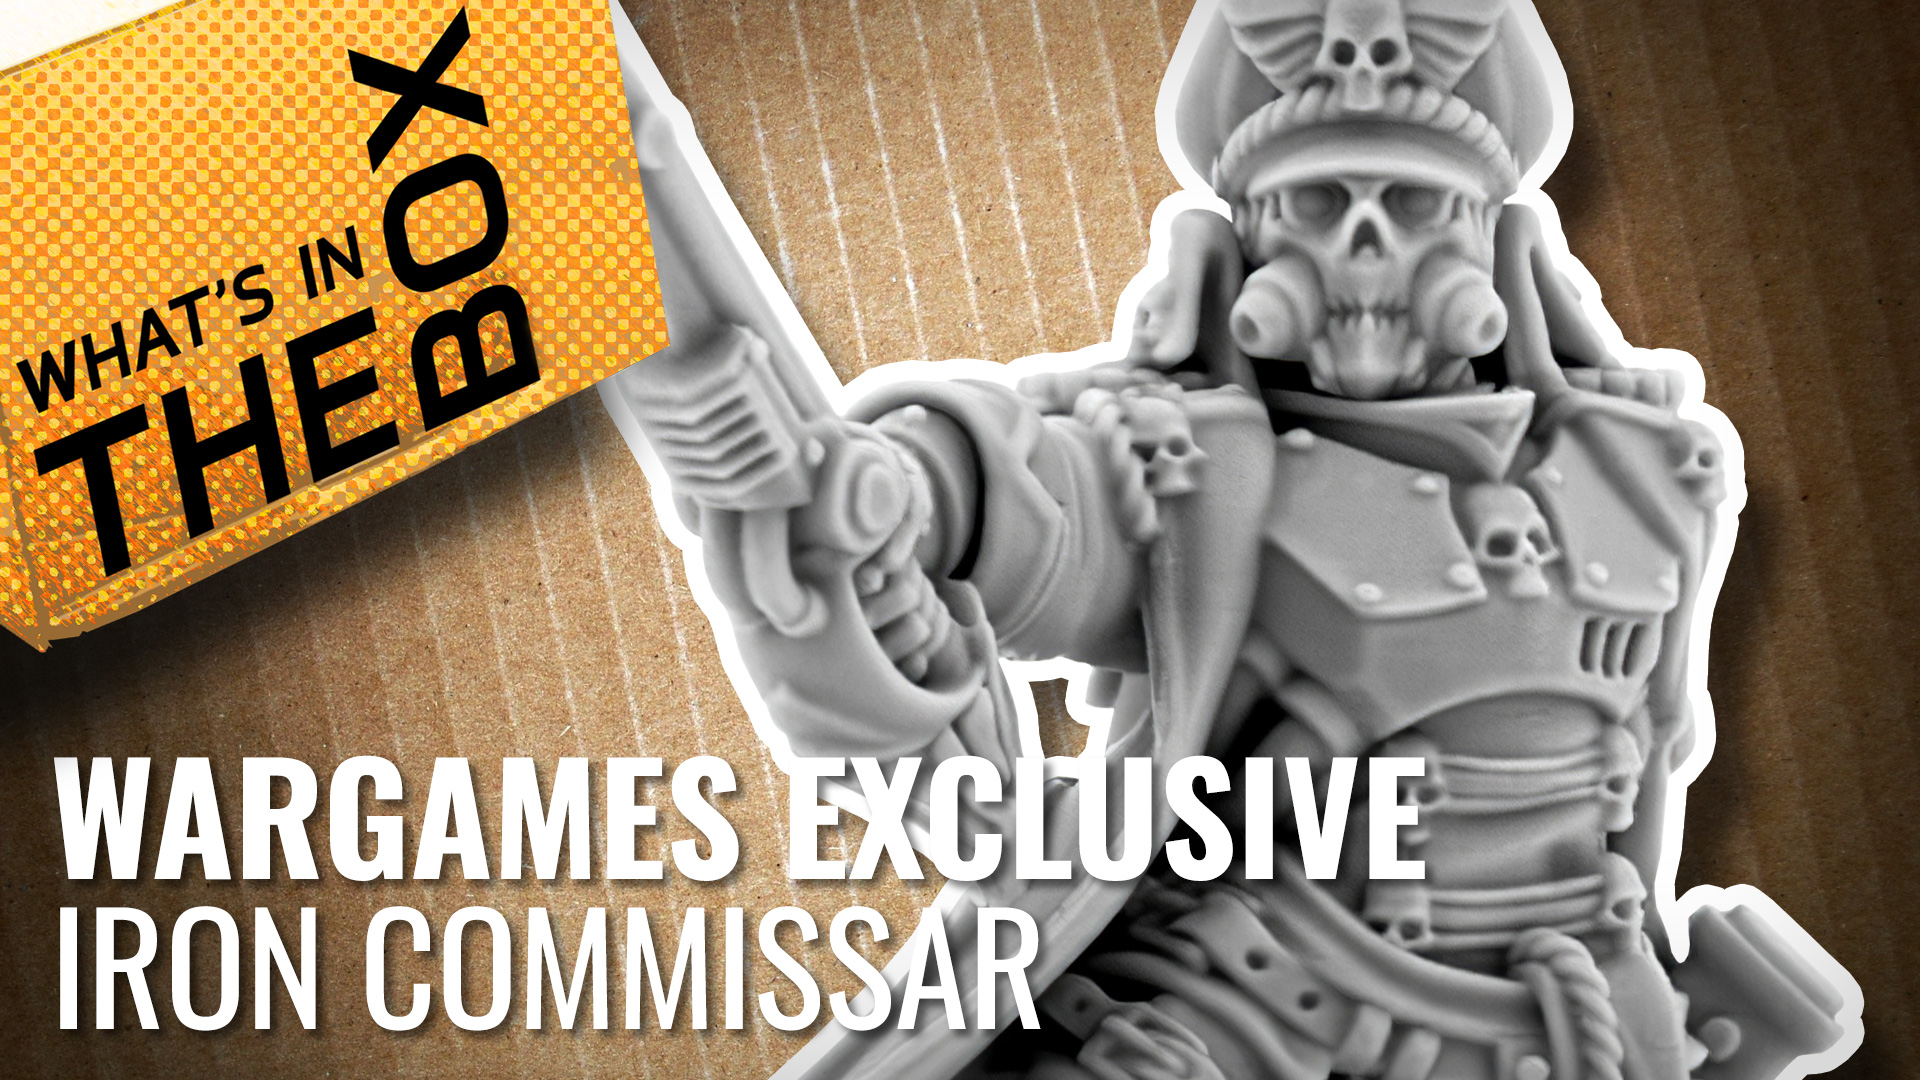 Wargames-Exclusive-Iron-Commissar-coverimage